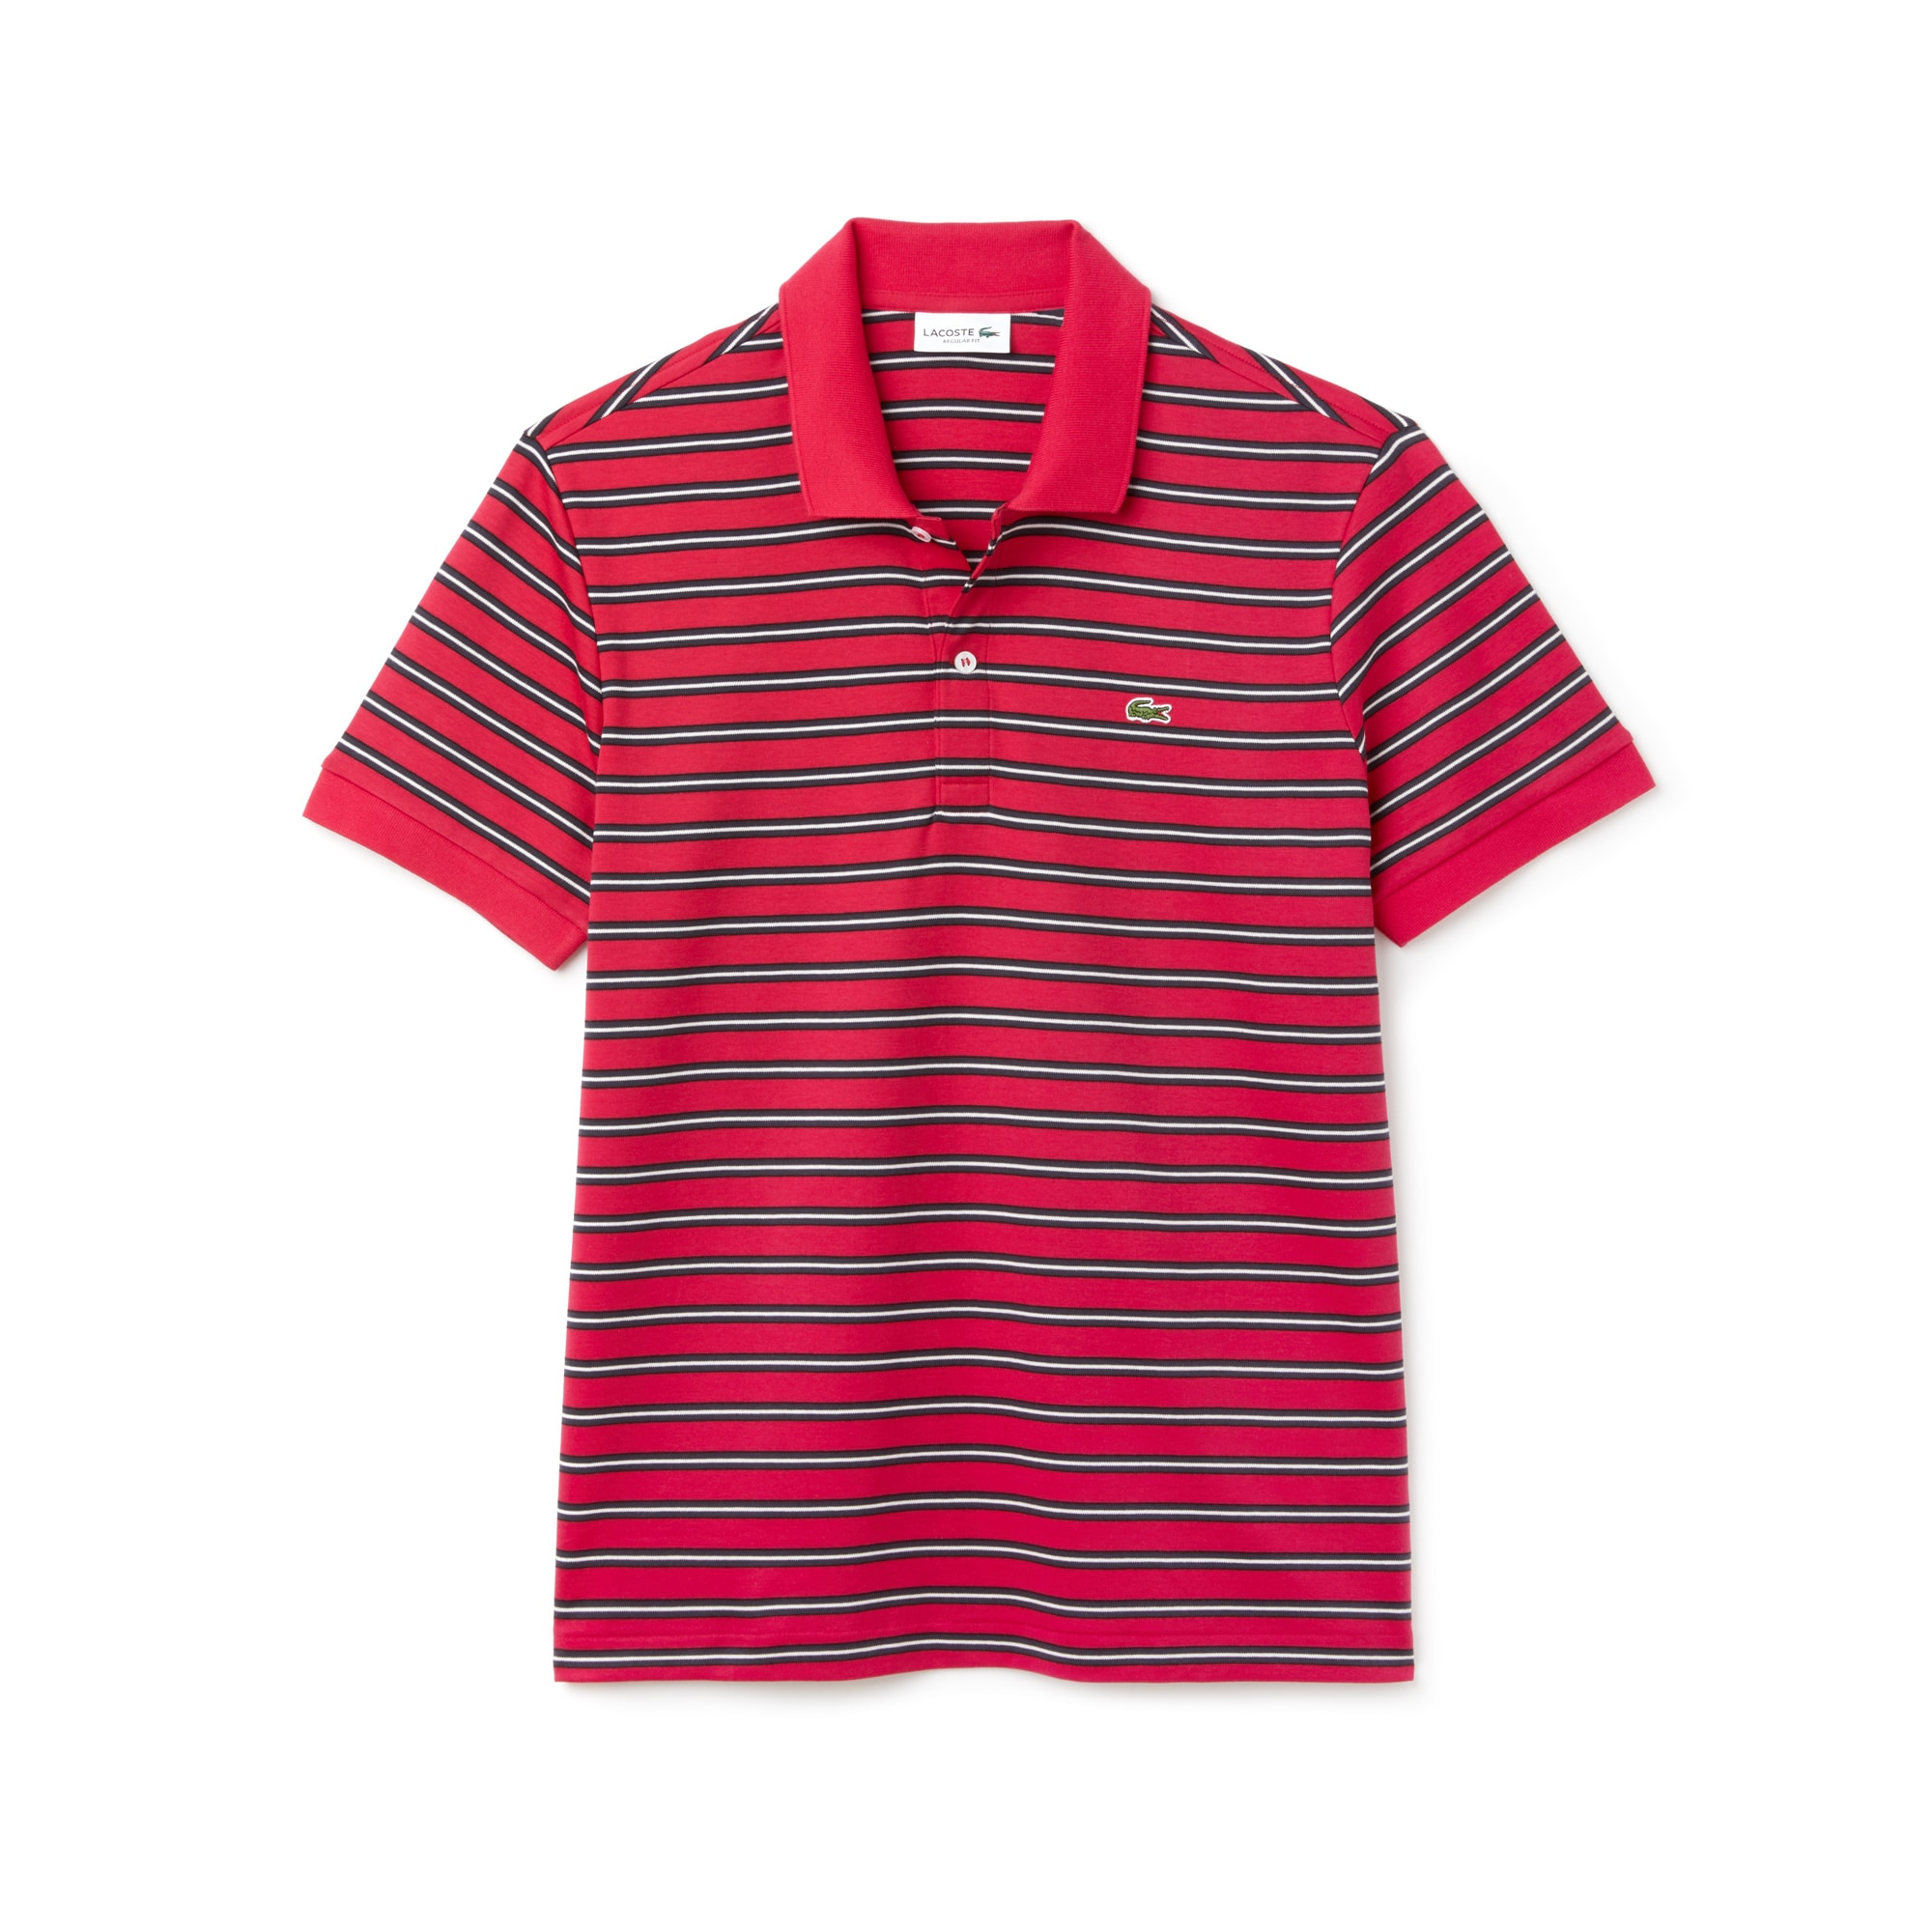 Men's Lacoste Regular Fit Striped Pima Cotton Interlock Polo